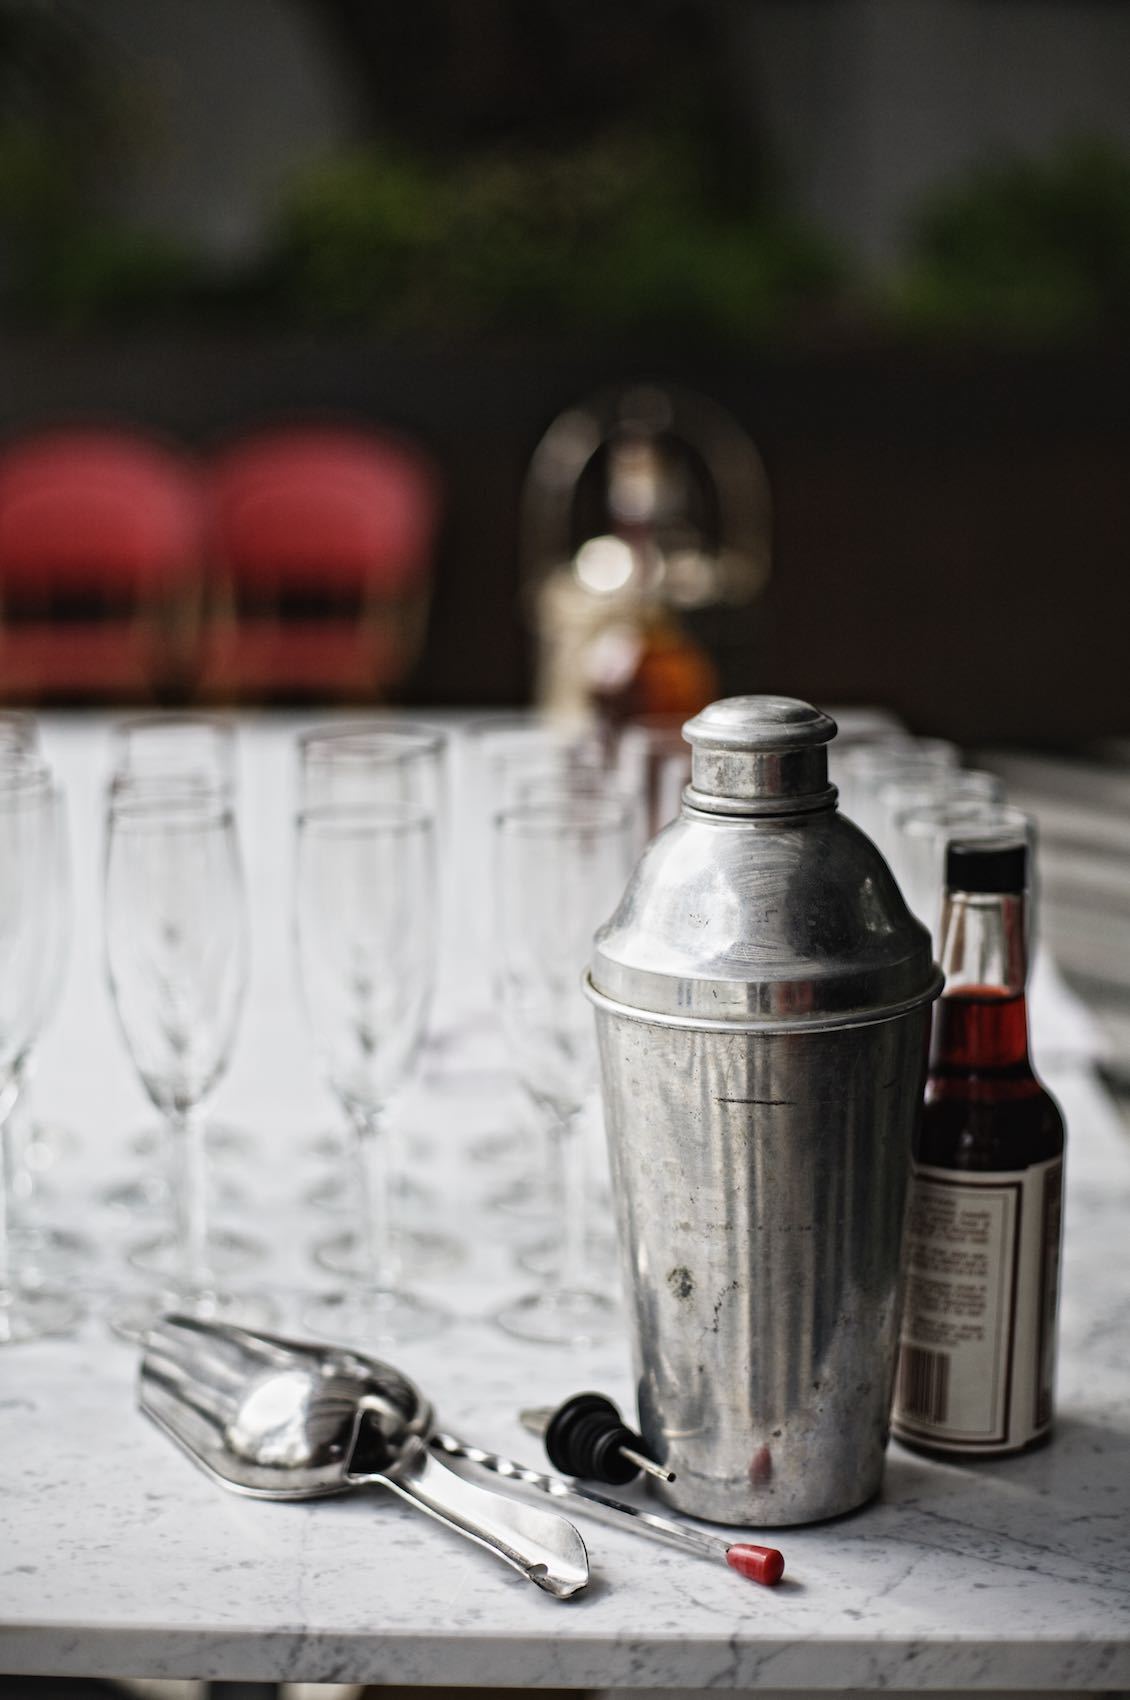 Jody Horton Photography - Vintage shaker, bitters and bar tools on granite table.